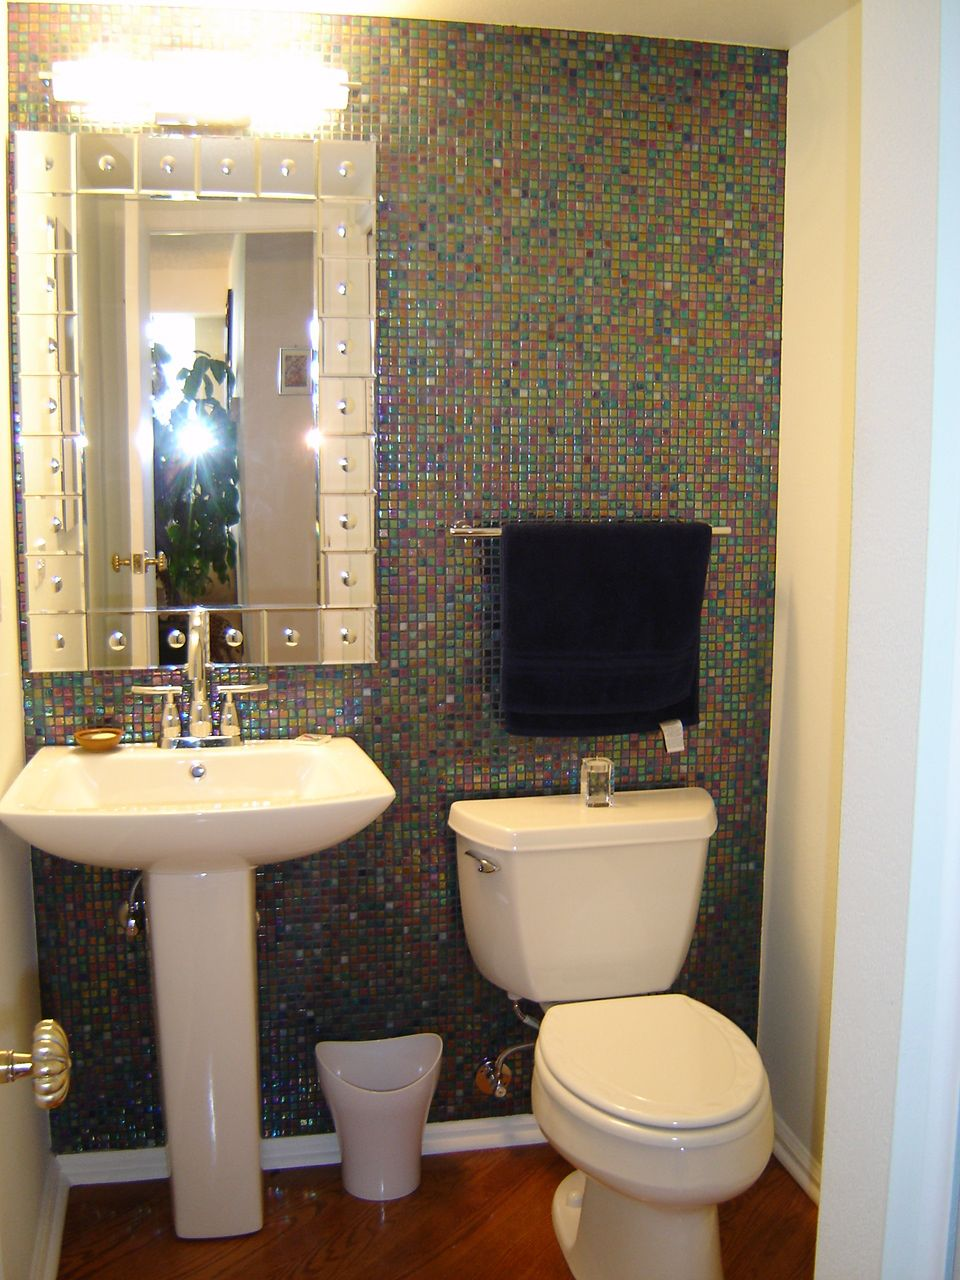 Sparkling powder room design with cool mosaic wall tiles - Powder room sink ideas ...